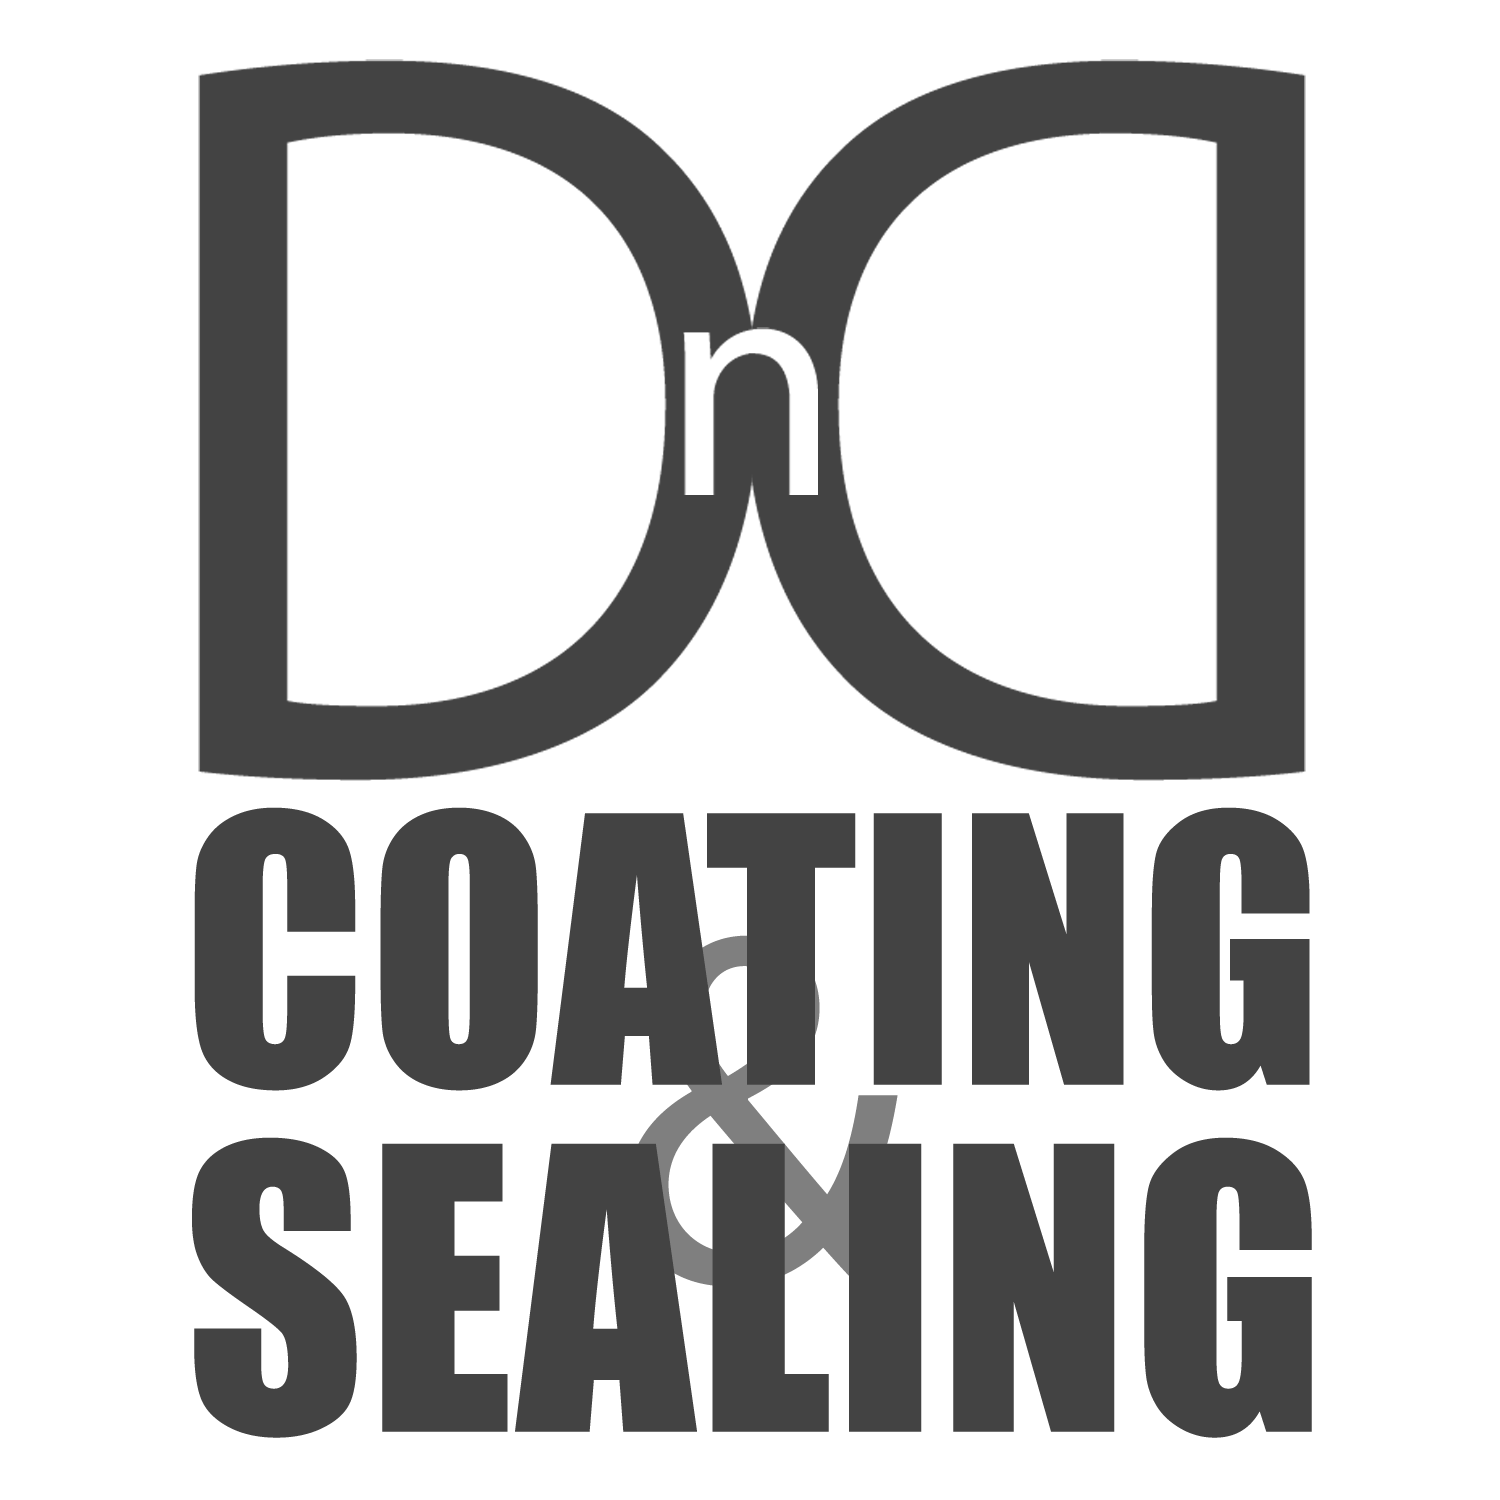 DnD Coating and Sealing image 5